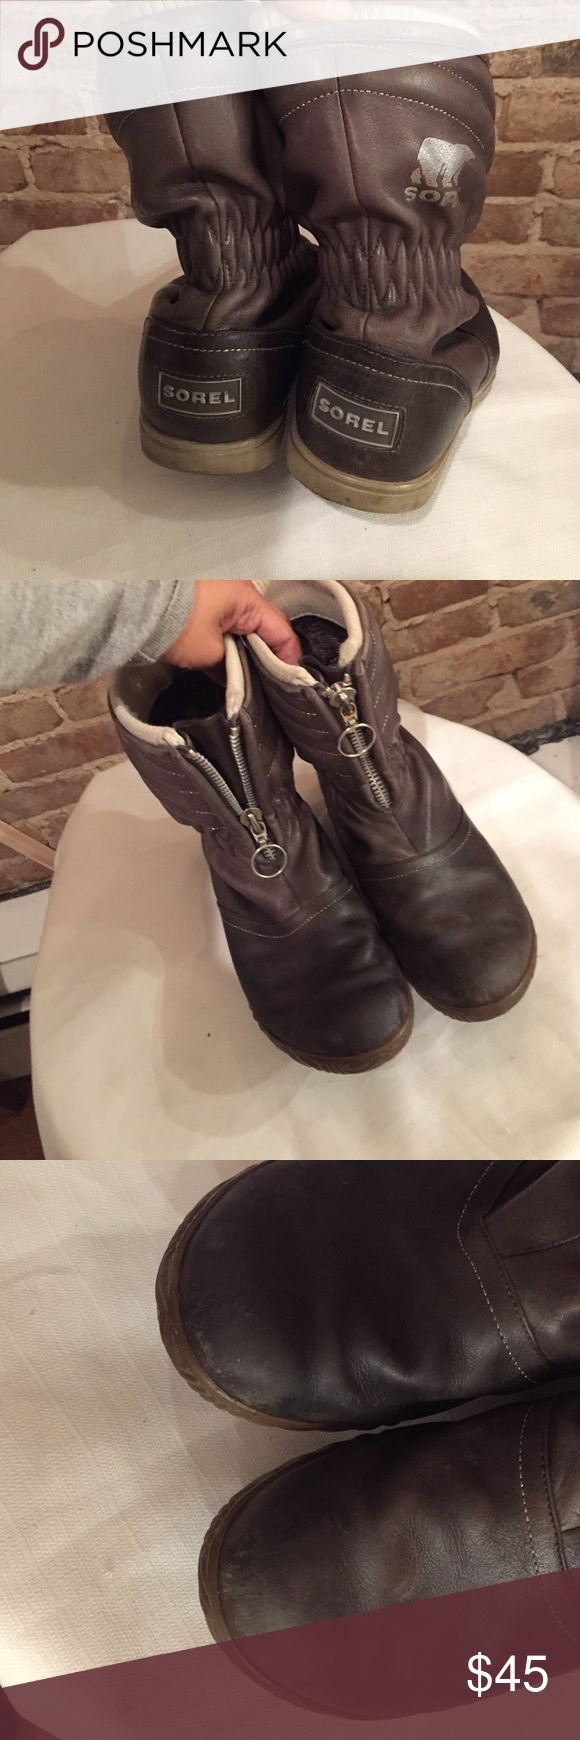 Sorel winter boots in grey/brown Size 8.5 authentic Sorel Boots. Some scuffs on toe but ready to keep you warm and dry. Waterproof snow boots ready for winter!!! Sorel Shoes Ankle Boots & Booties